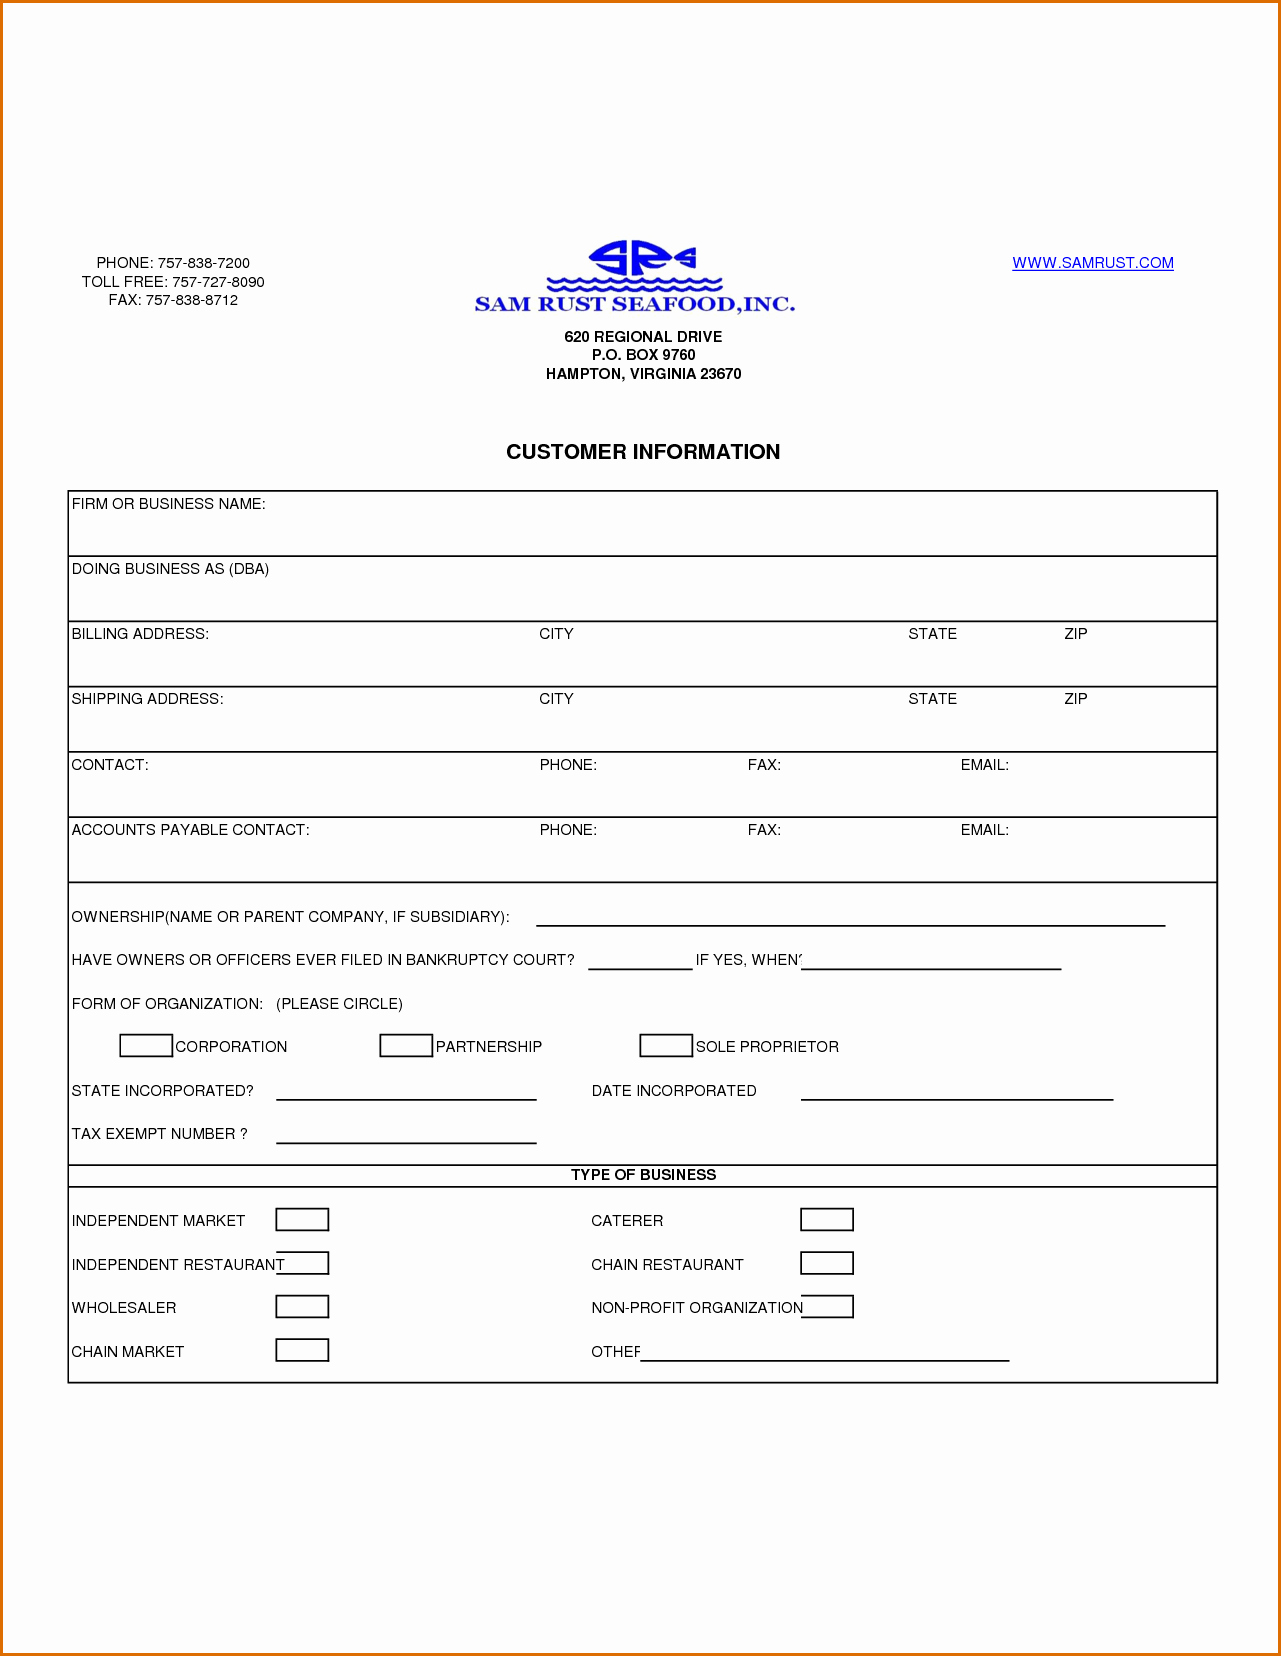 Contact Information form Template Word Elegant 13 Customer Information form Template